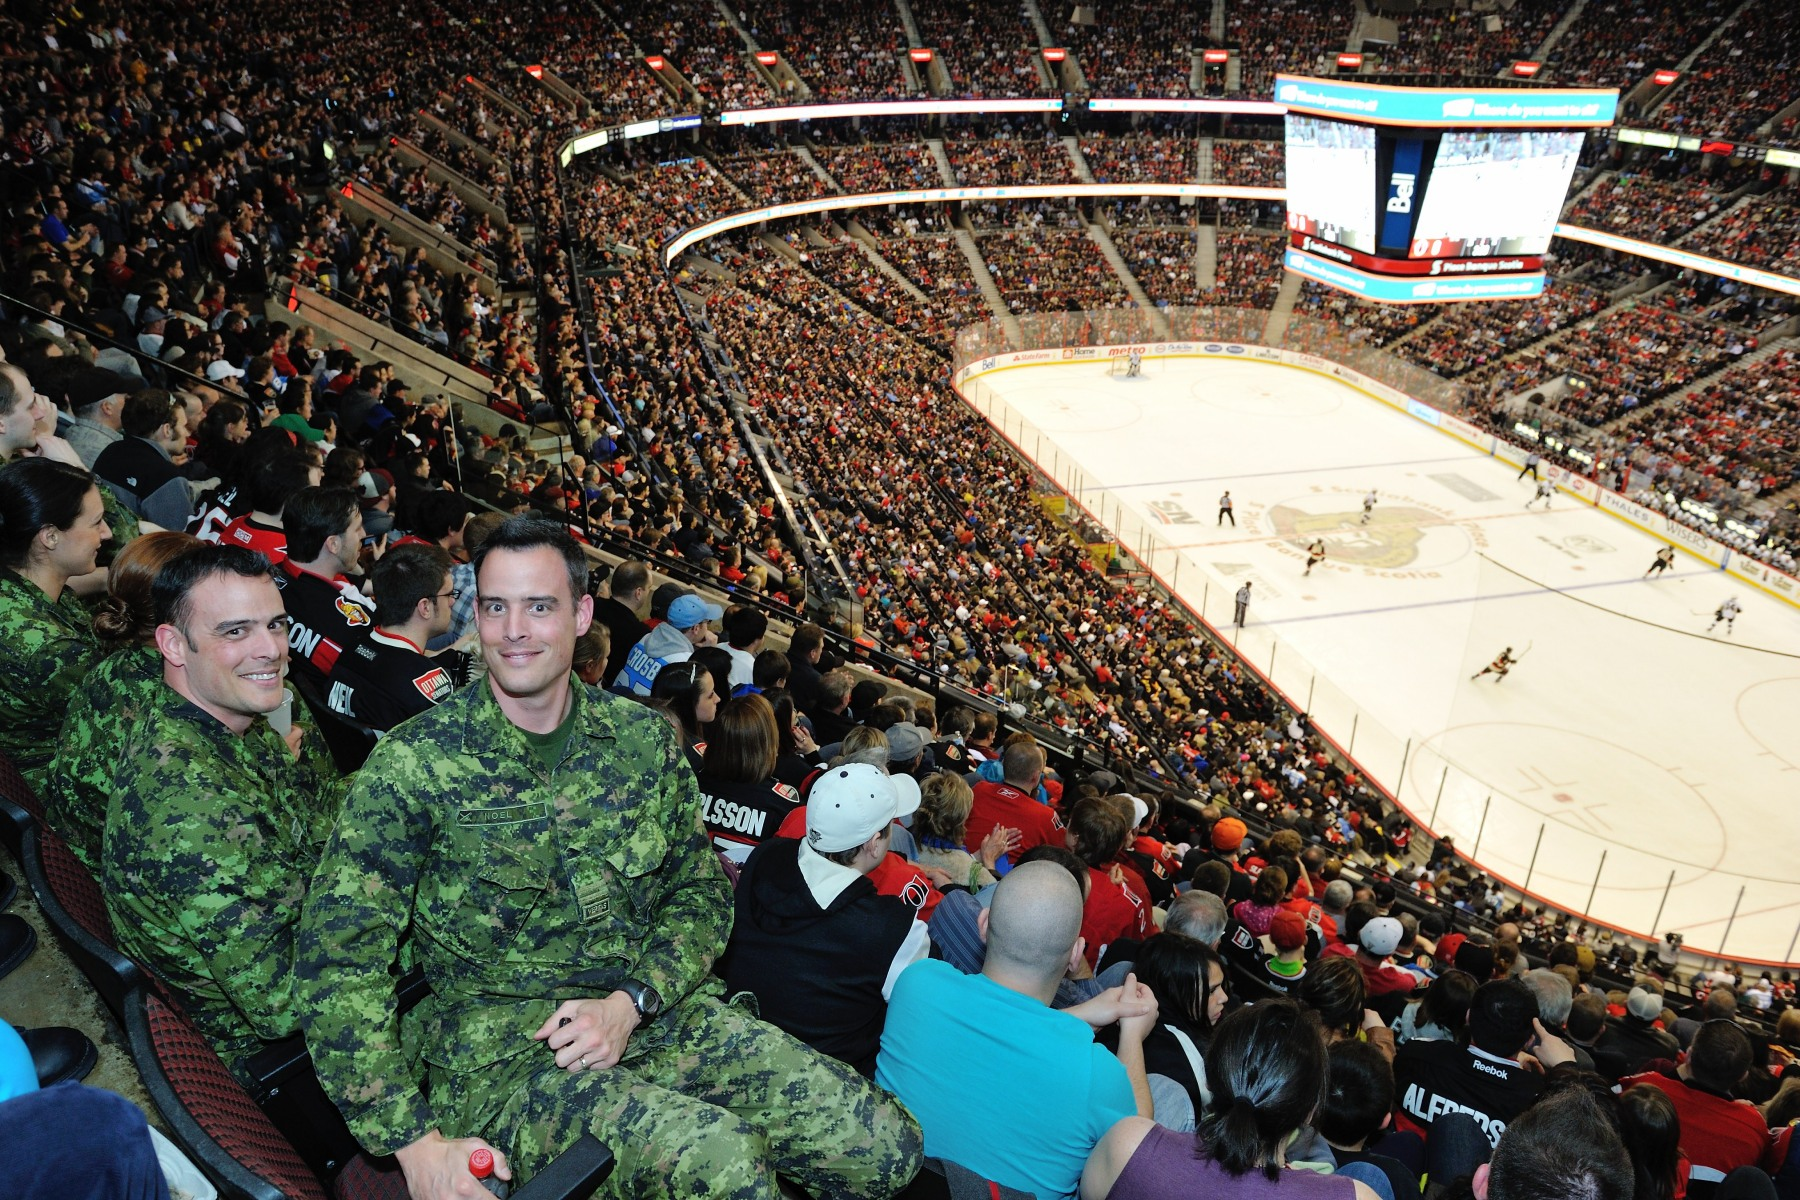 Lieutenant Mark Noël (Royal 22e Régiment) and Captain Dennis Noël (Public Affairs Officer) were among those who attended the game.